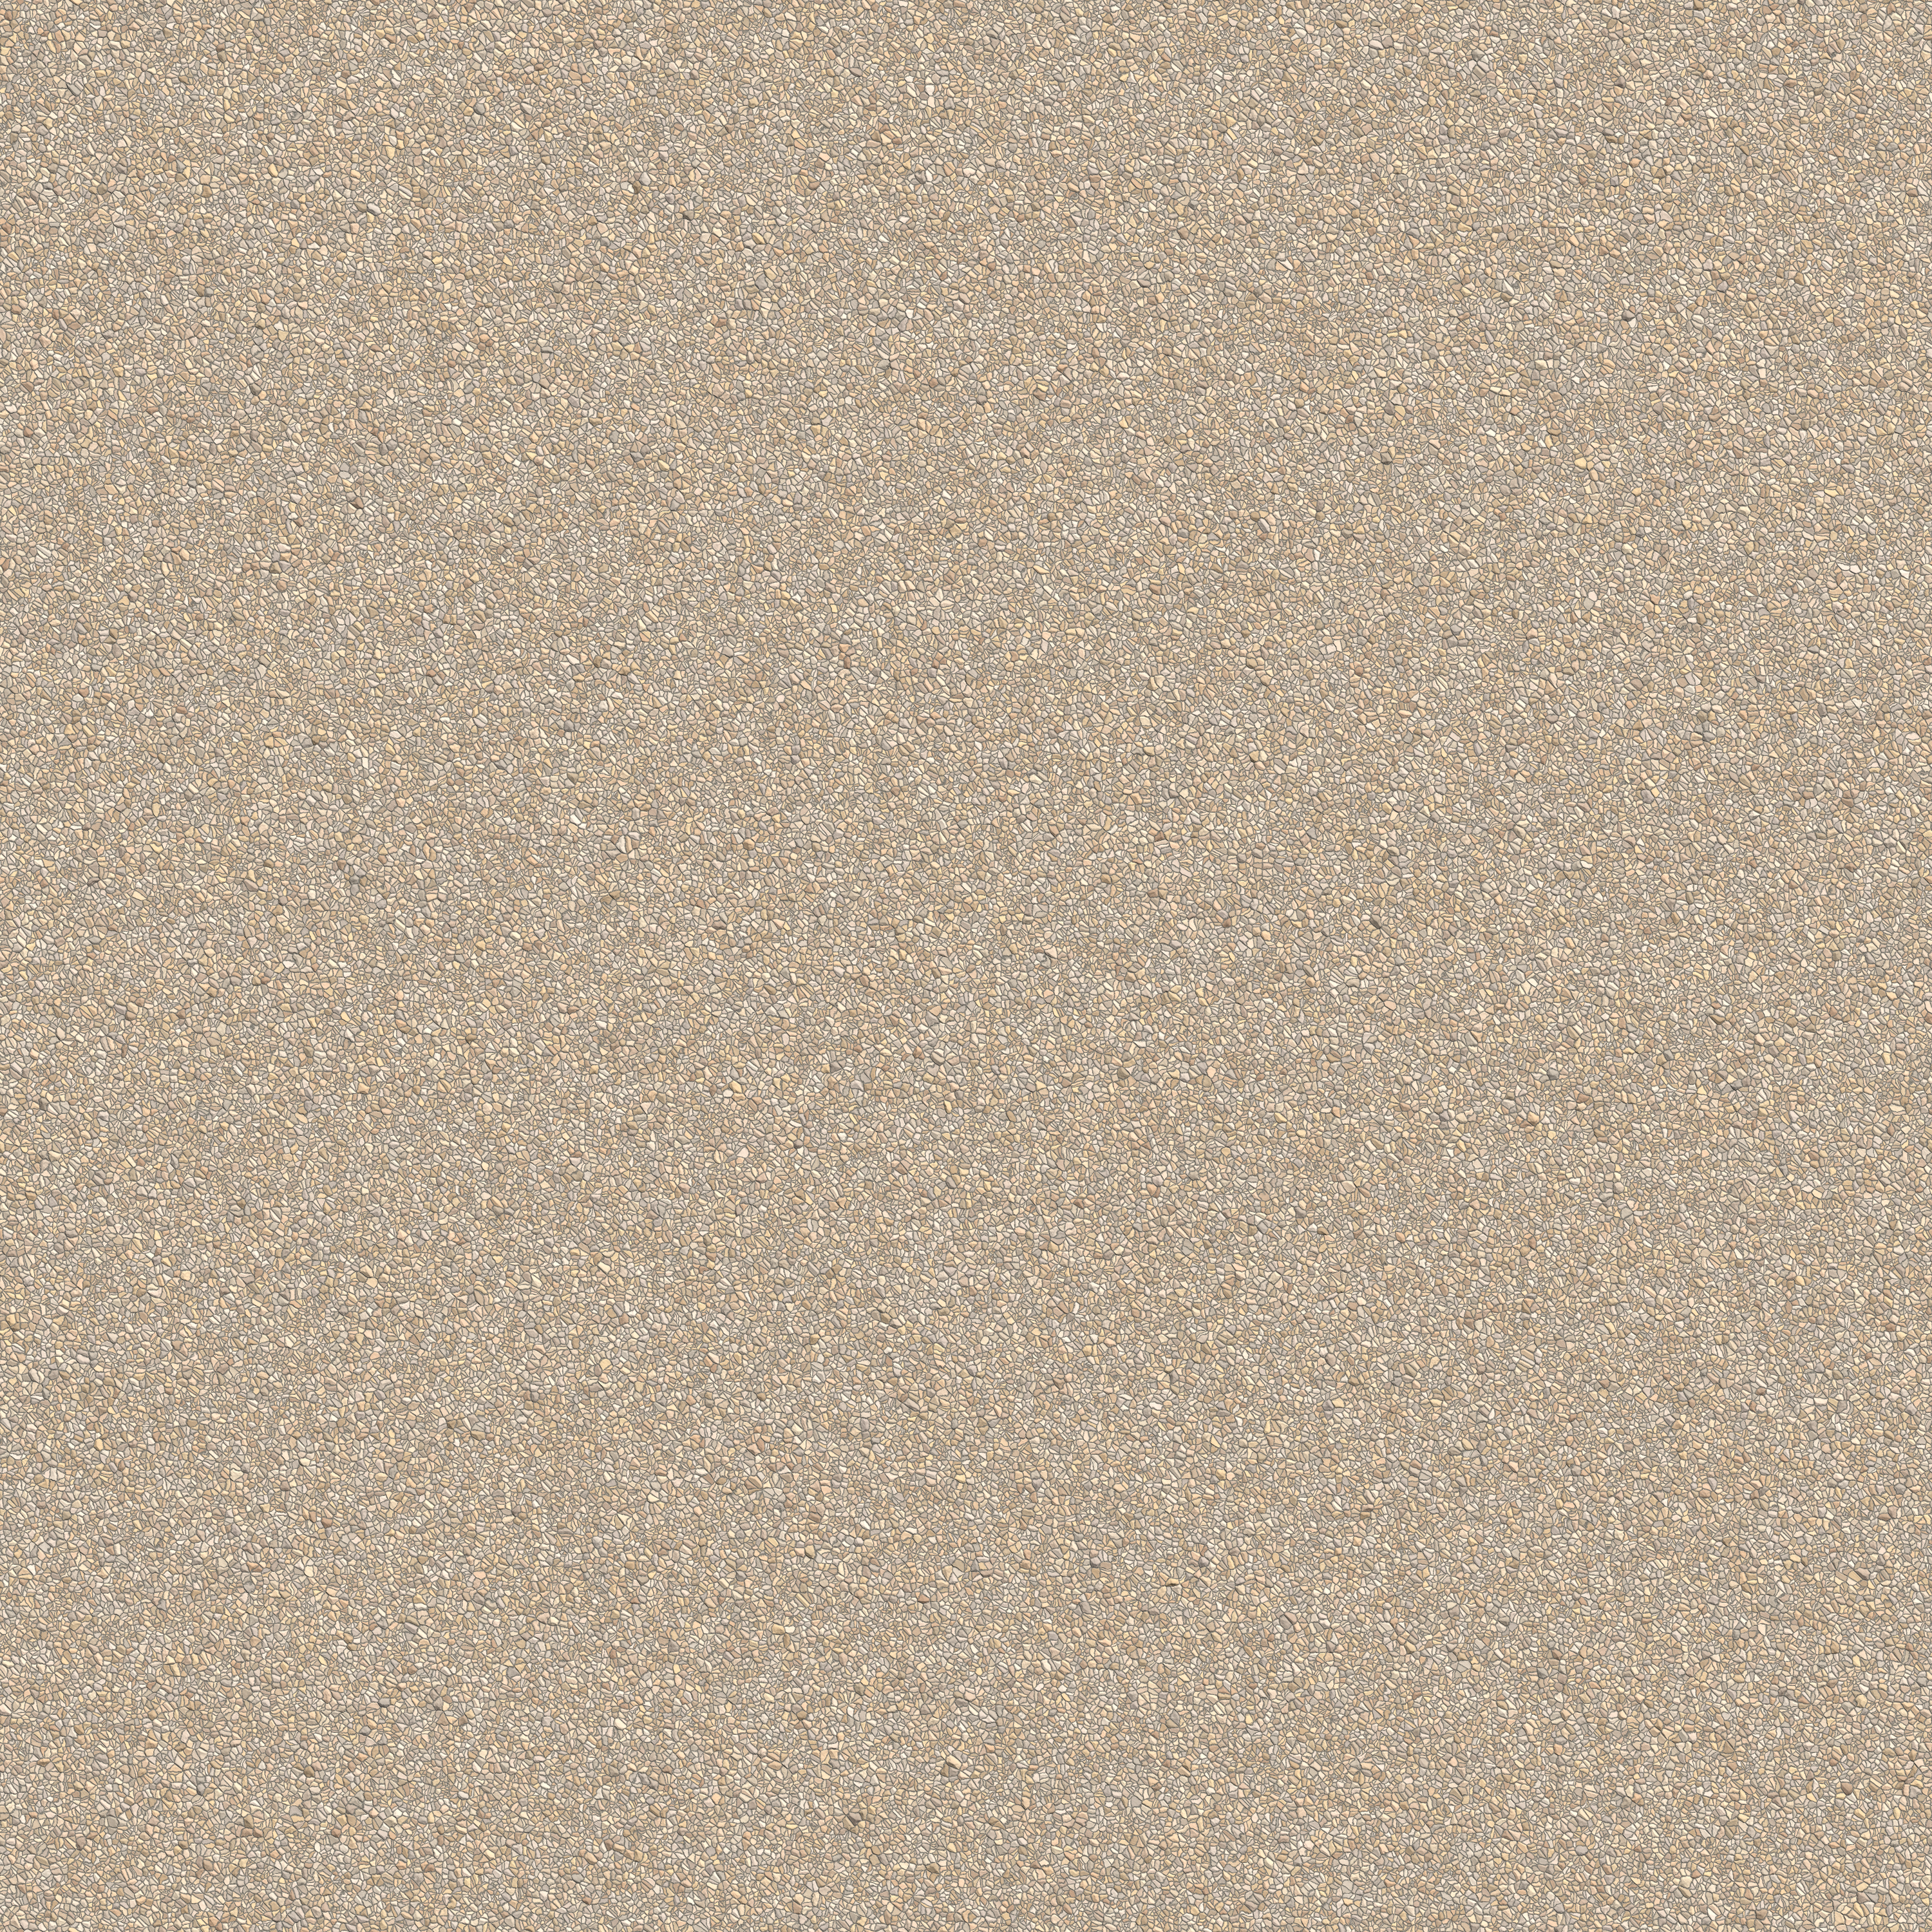 gallery for gt wall texture seamless